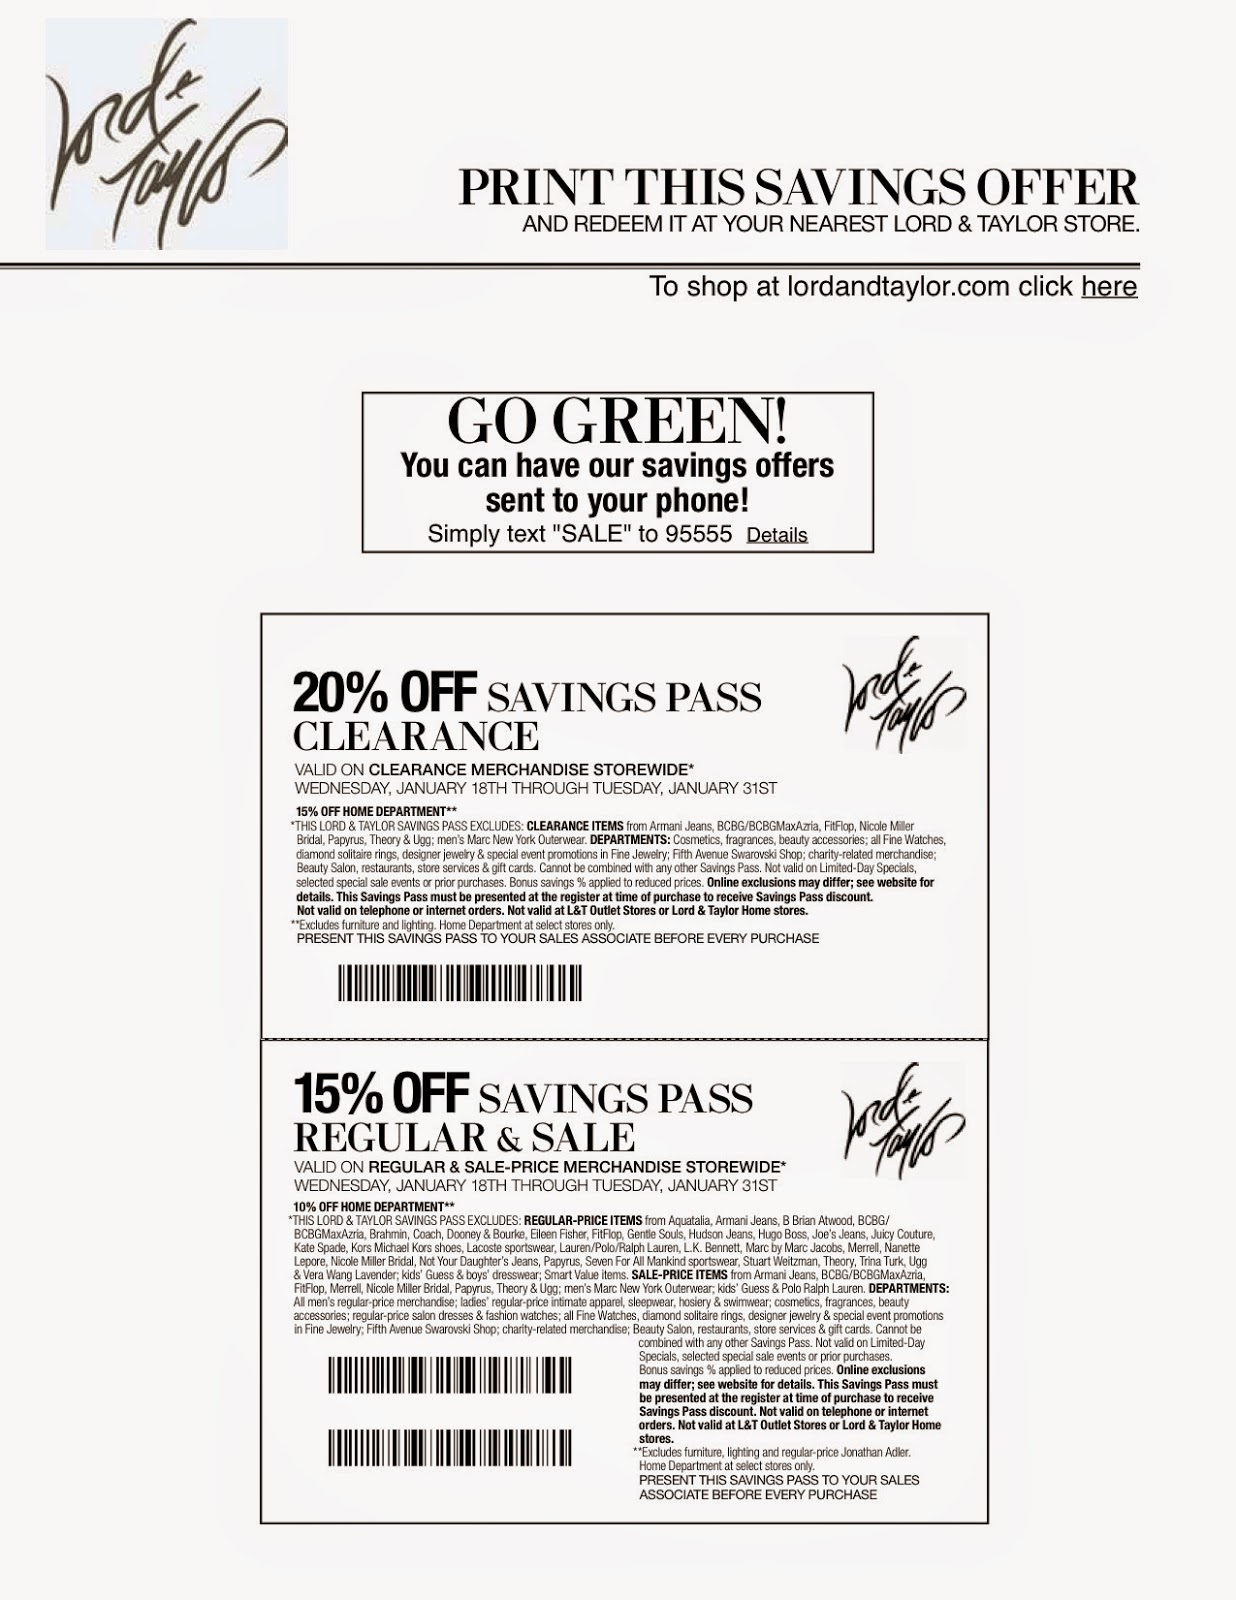 picture about Lord and Taylor Printable Coupon identify Lord and taylor price reduction coupon - Ideal Wholesale